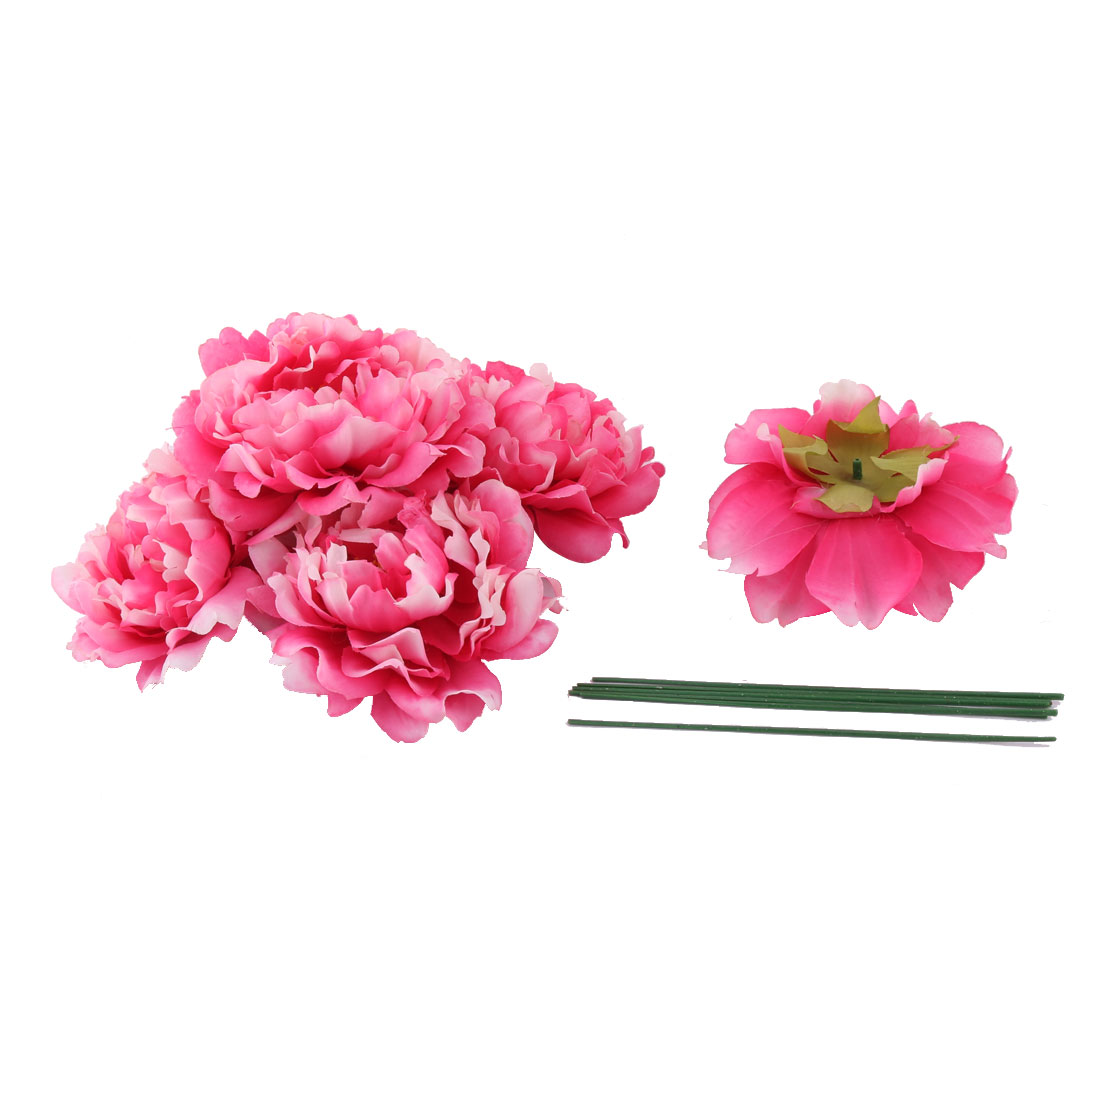 Household Party Fabric Handicraft DIY Decoration Artificial Flower Heads Fuchsia 6 Pcs